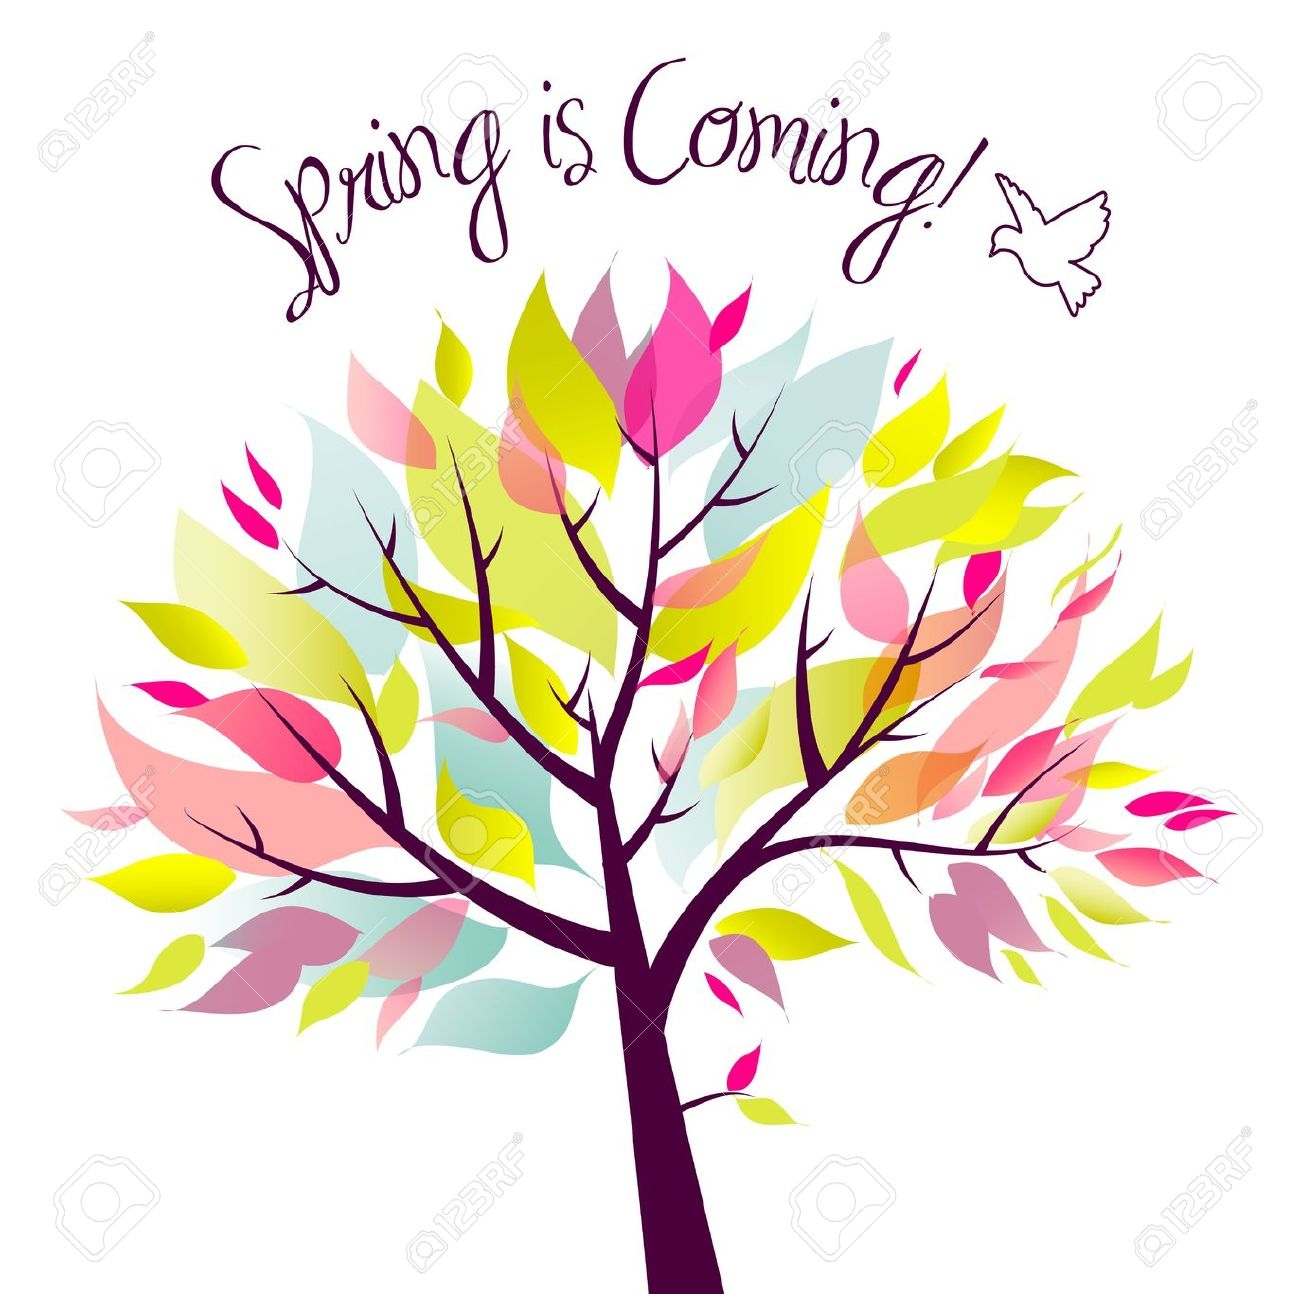 Spring is coming clipart.